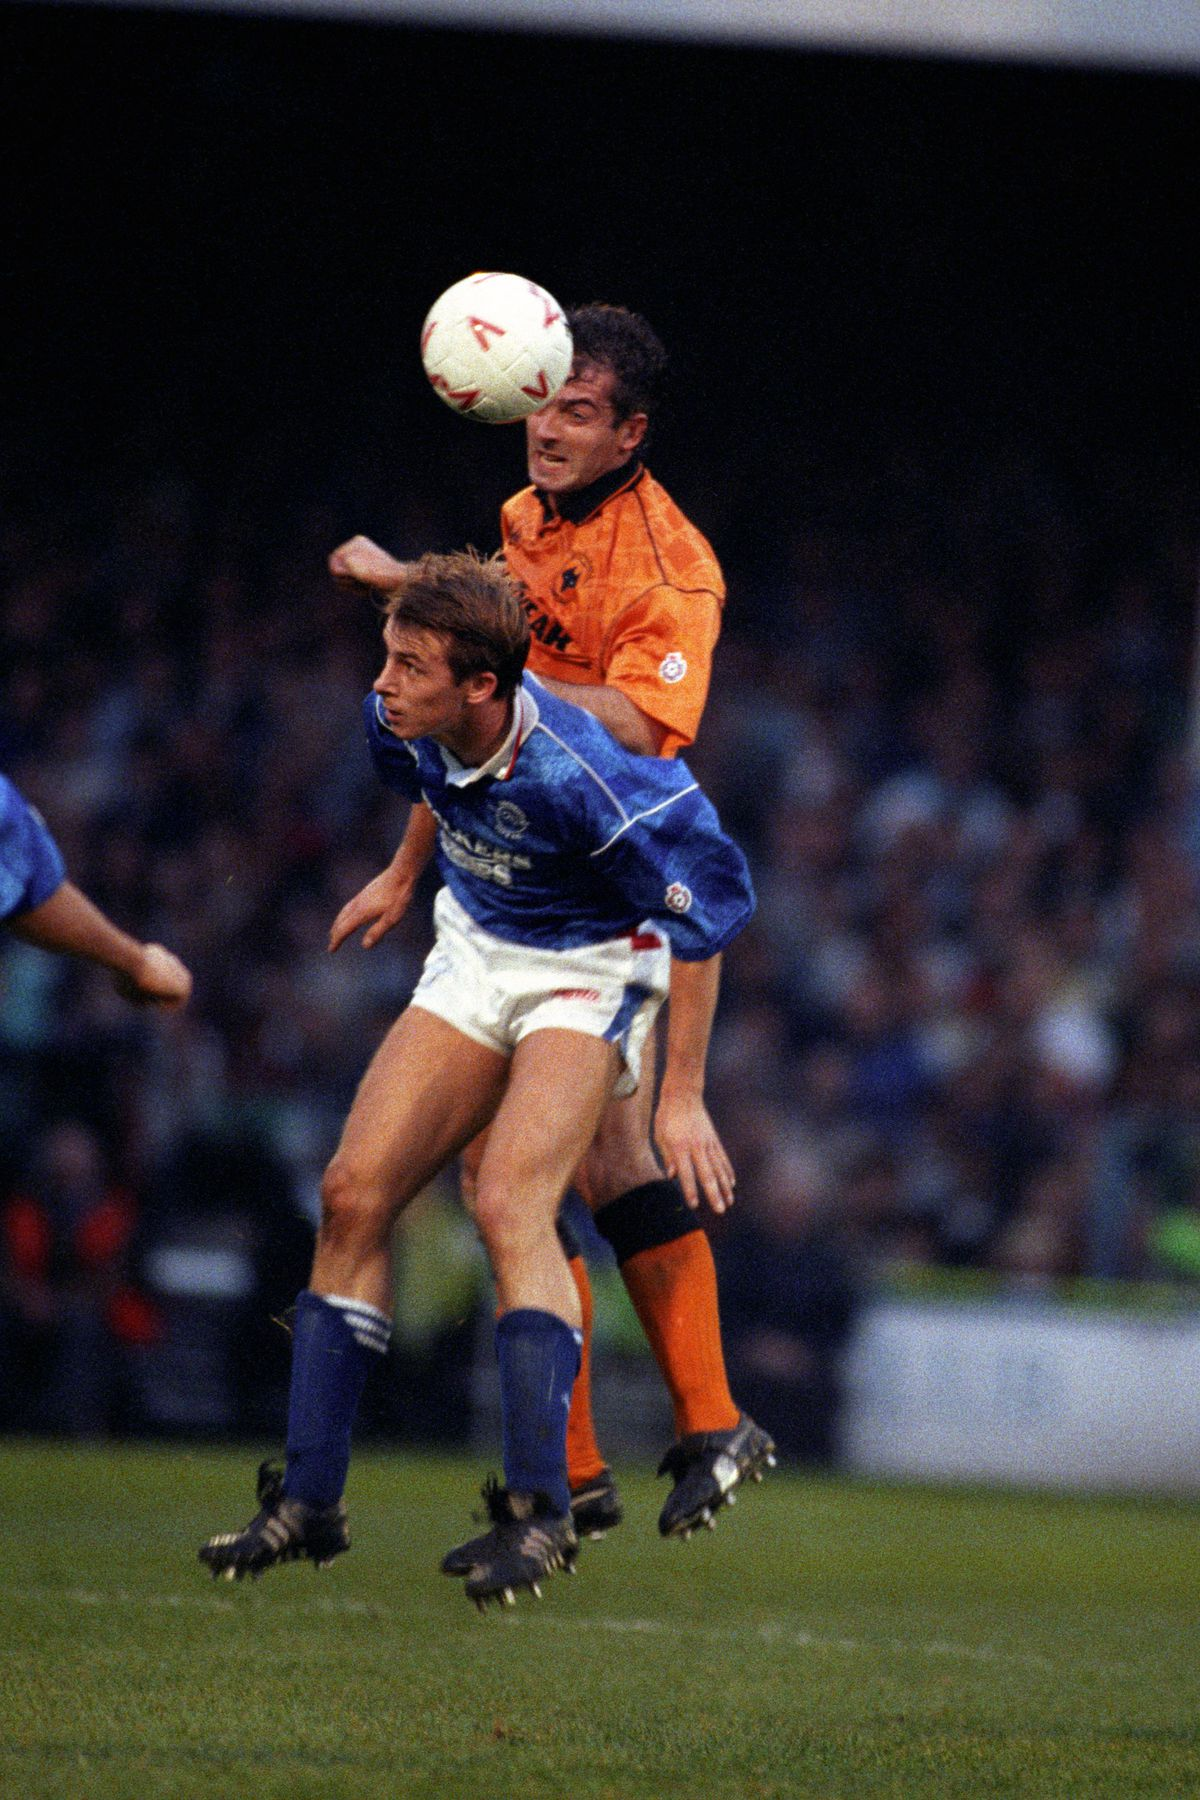 Soccer - Barclays League Division Two - Leicester City v Wolverhampton Wanderers